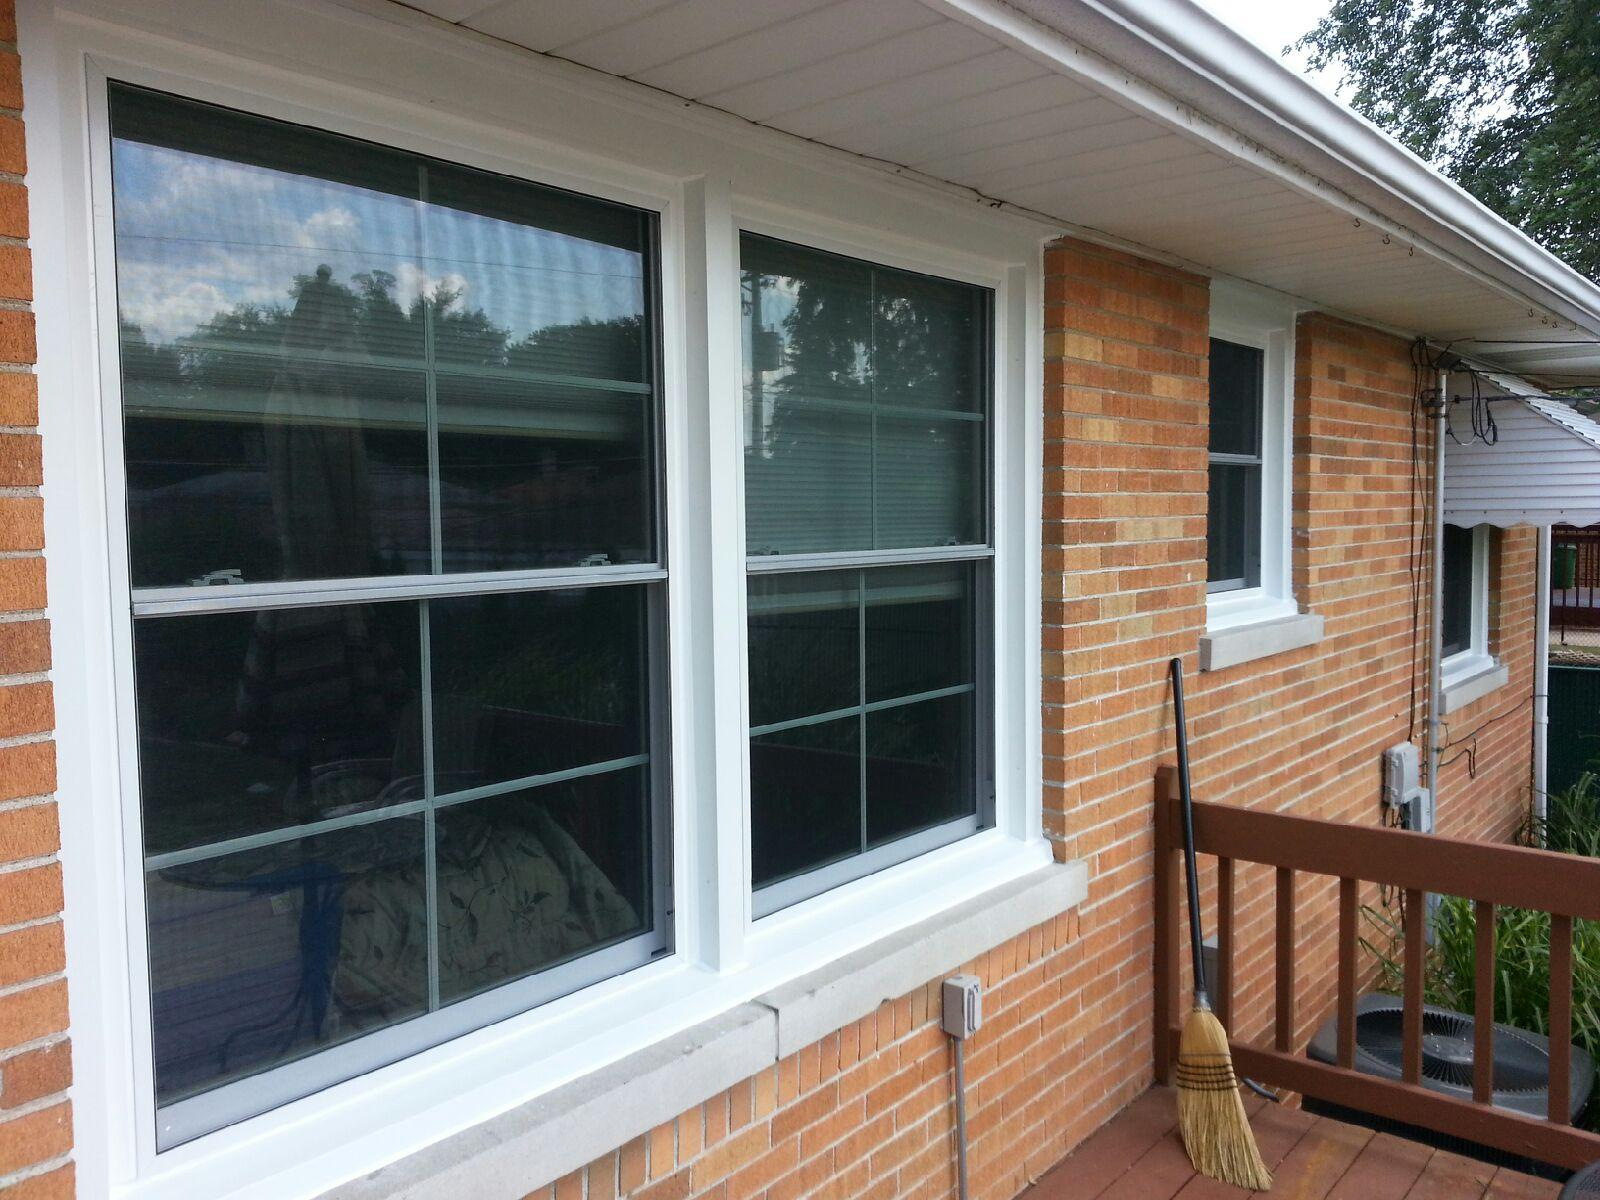 Double hung windows with grids.